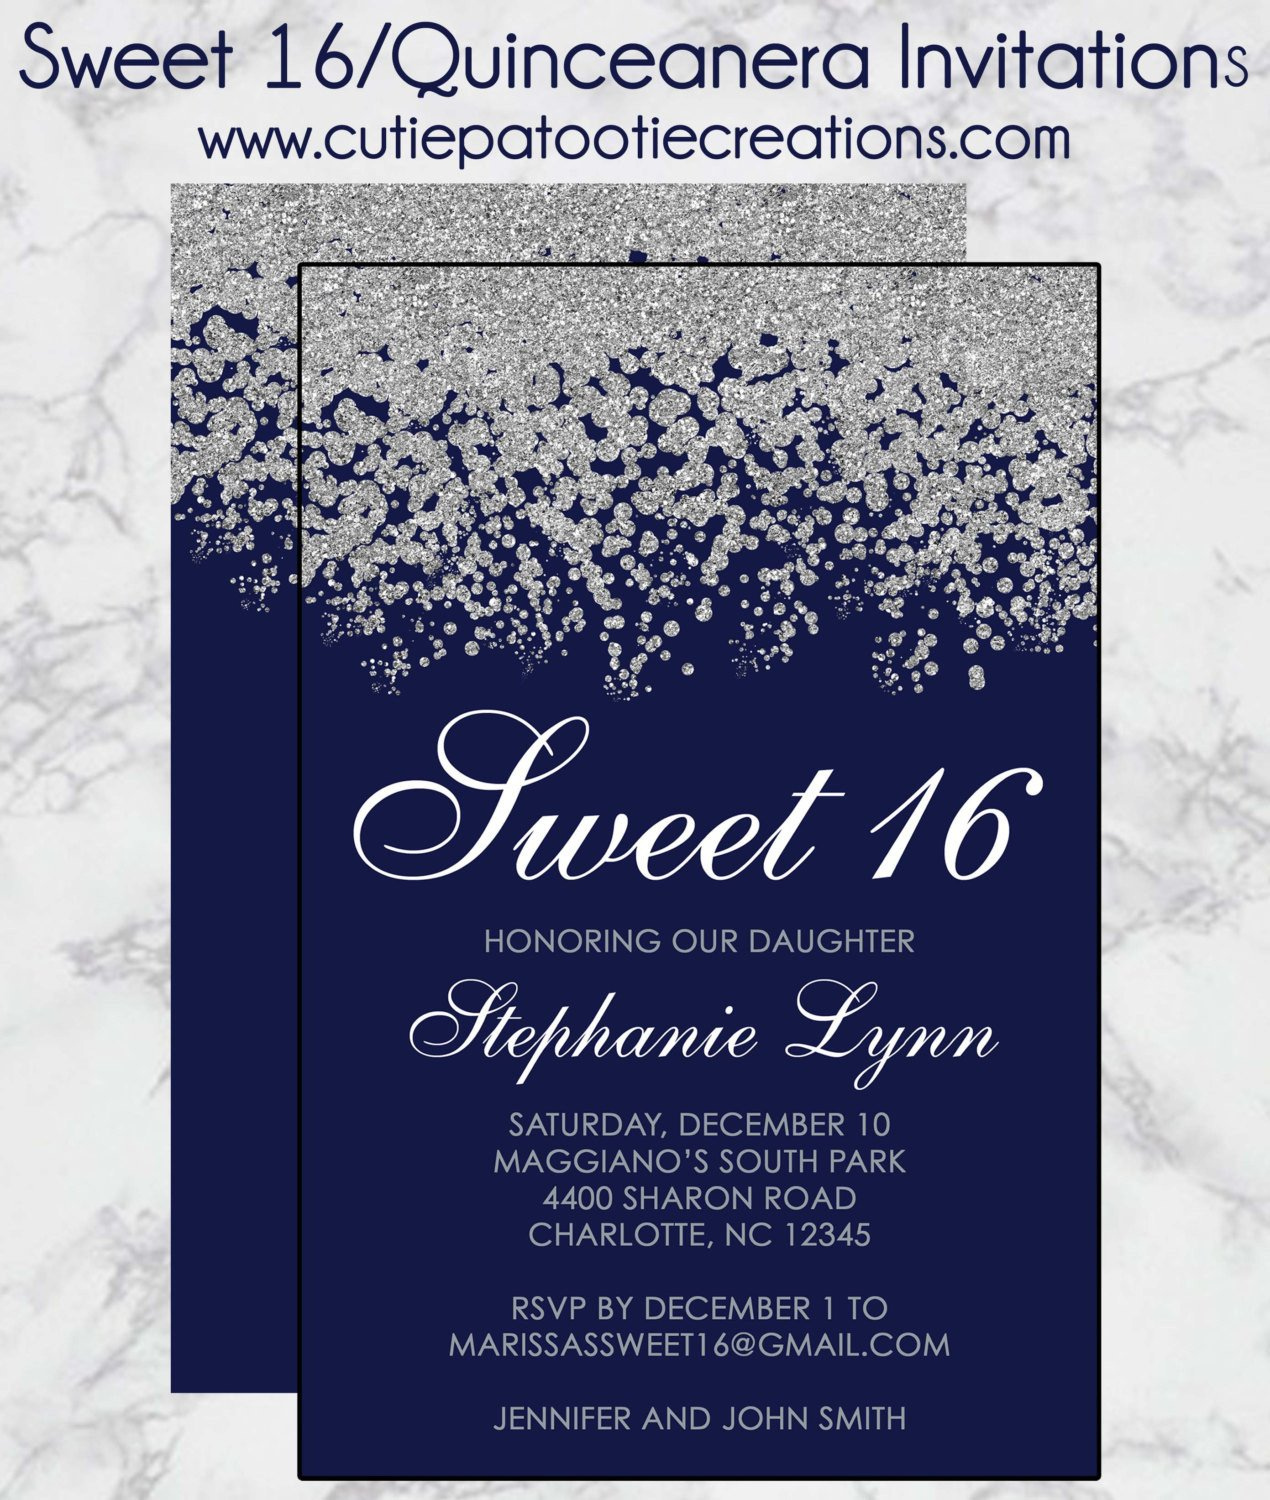 Sweet 16 Invite Template Sweet 16 Birthday Invitations Quinceanera Invitation Navy